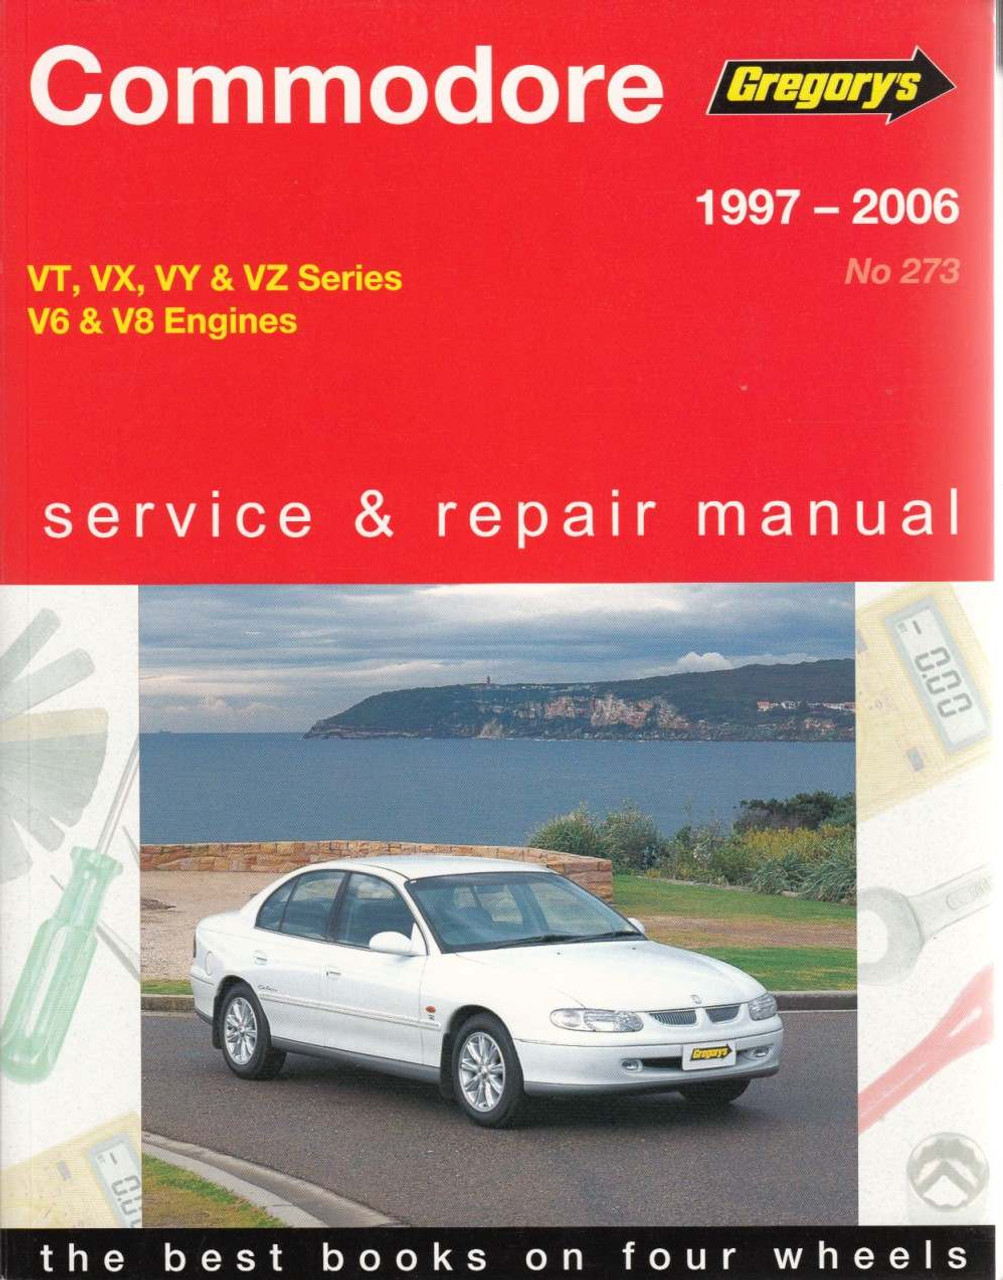 holden commodore vt vx vy vz series v6 amp v8 1997 2006 rh automotobookshop com au Holden VY Commodore Interior Holden VY Commodore Interior